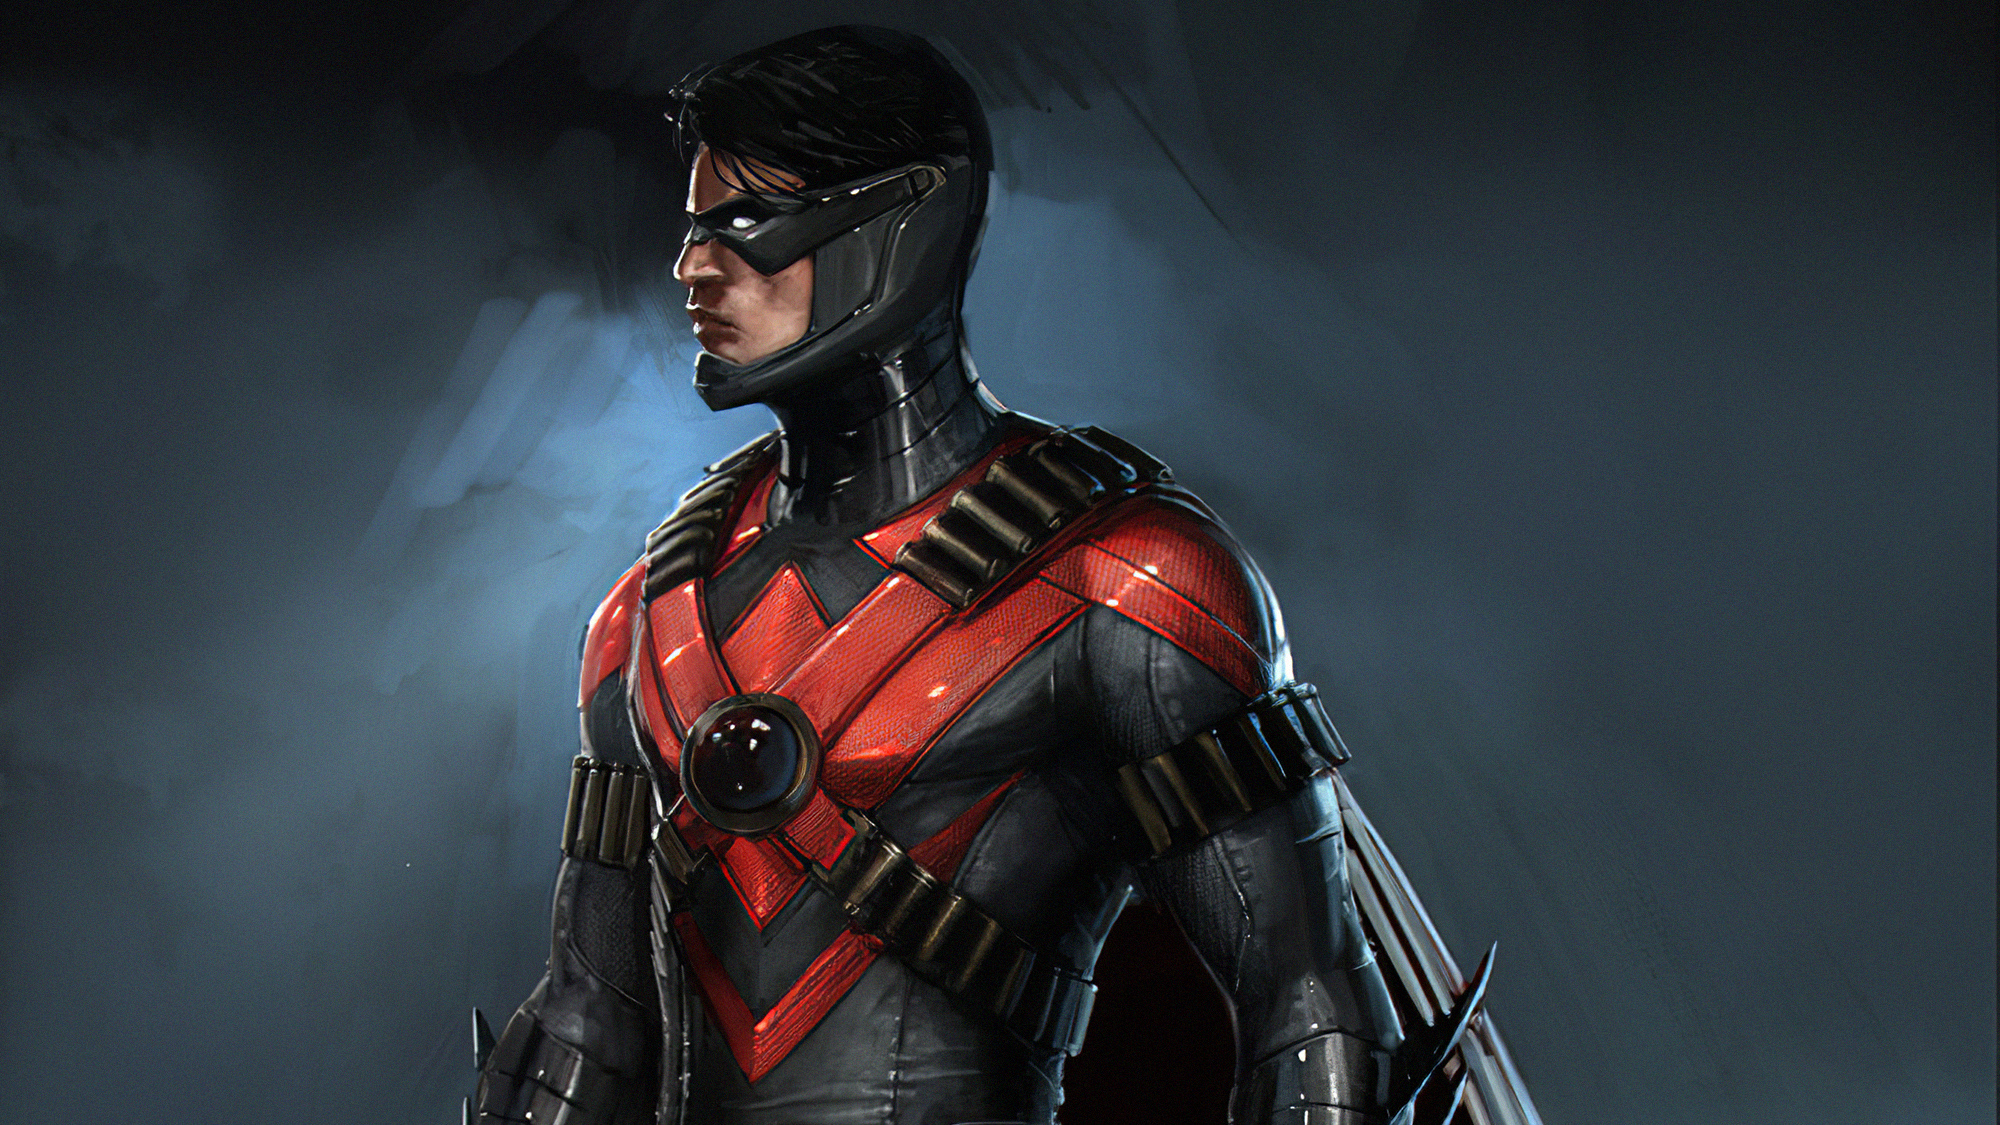 Nightwing Injustice 2 Wallpaper Hd Games 4k Wallpapers Images